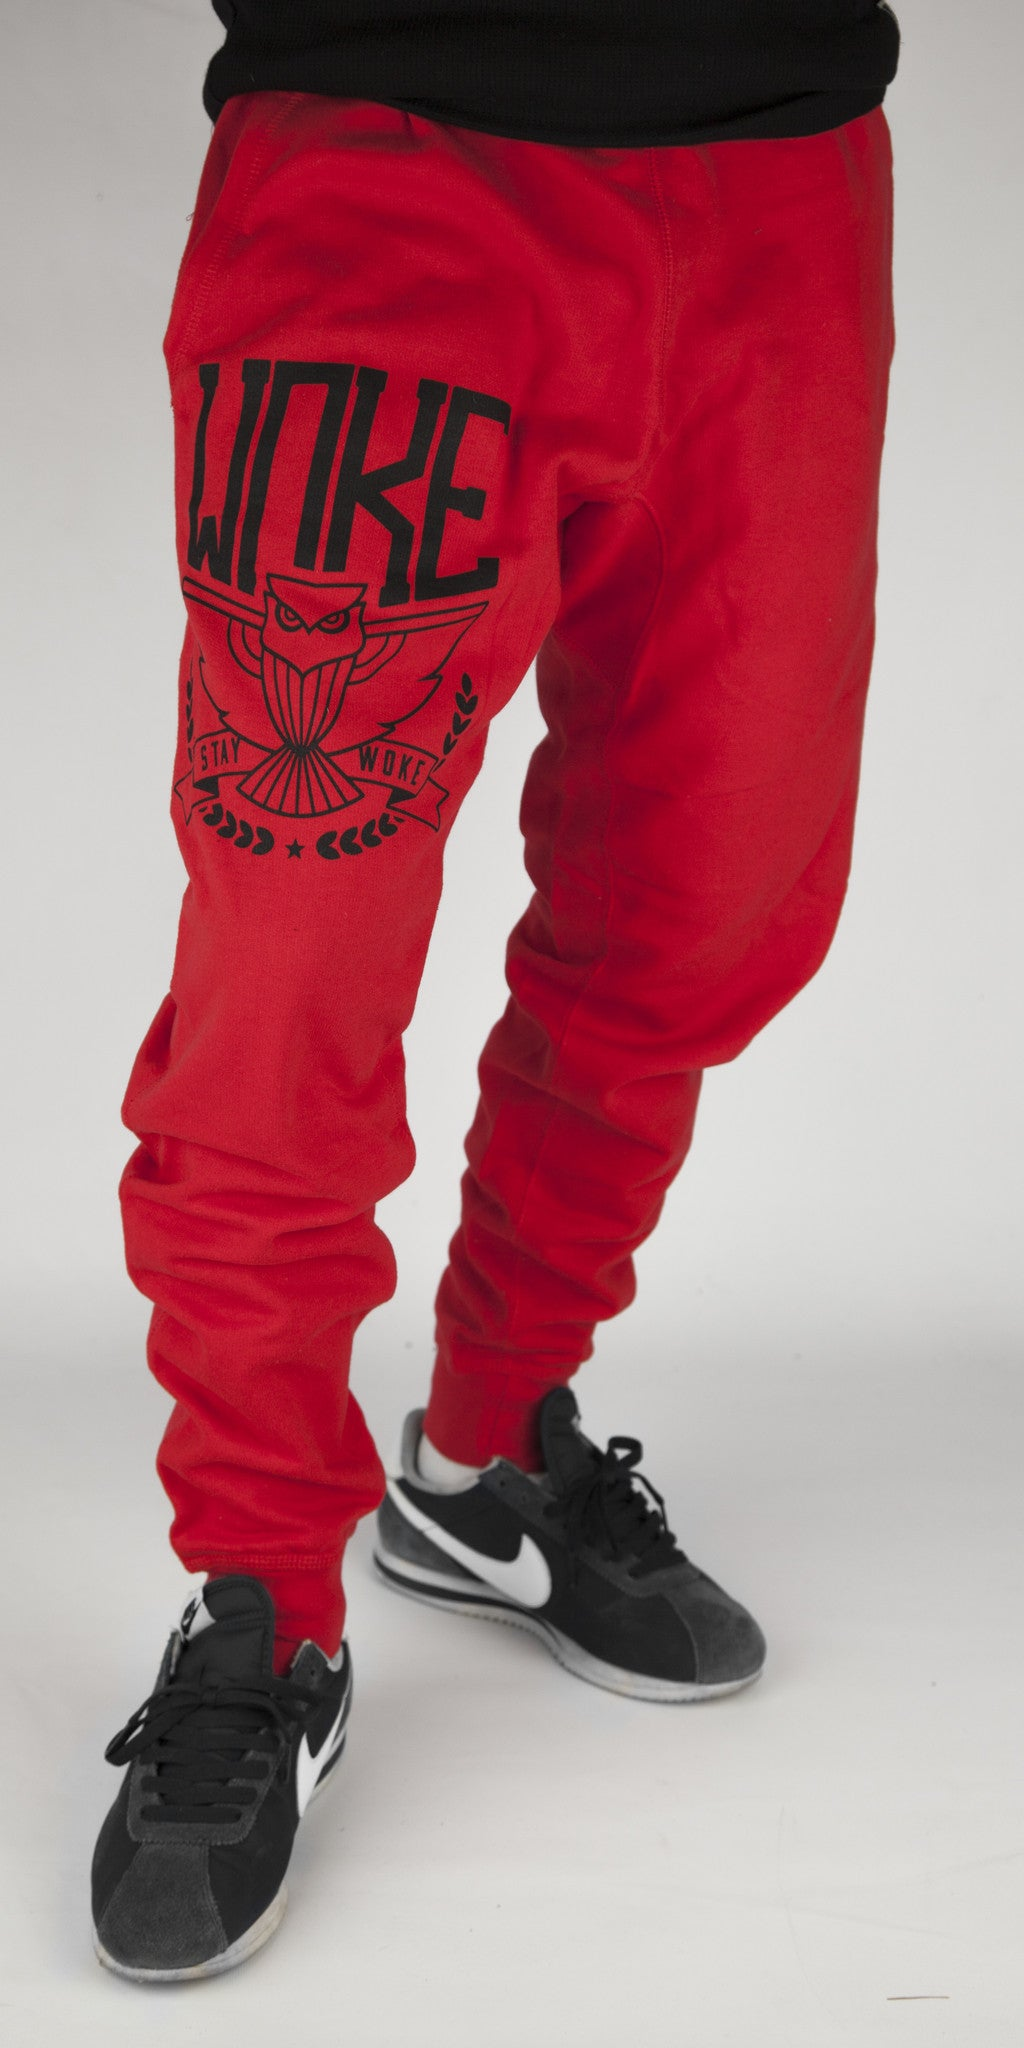 Stay Woke Emblem RED Joggers - WOKE - 1